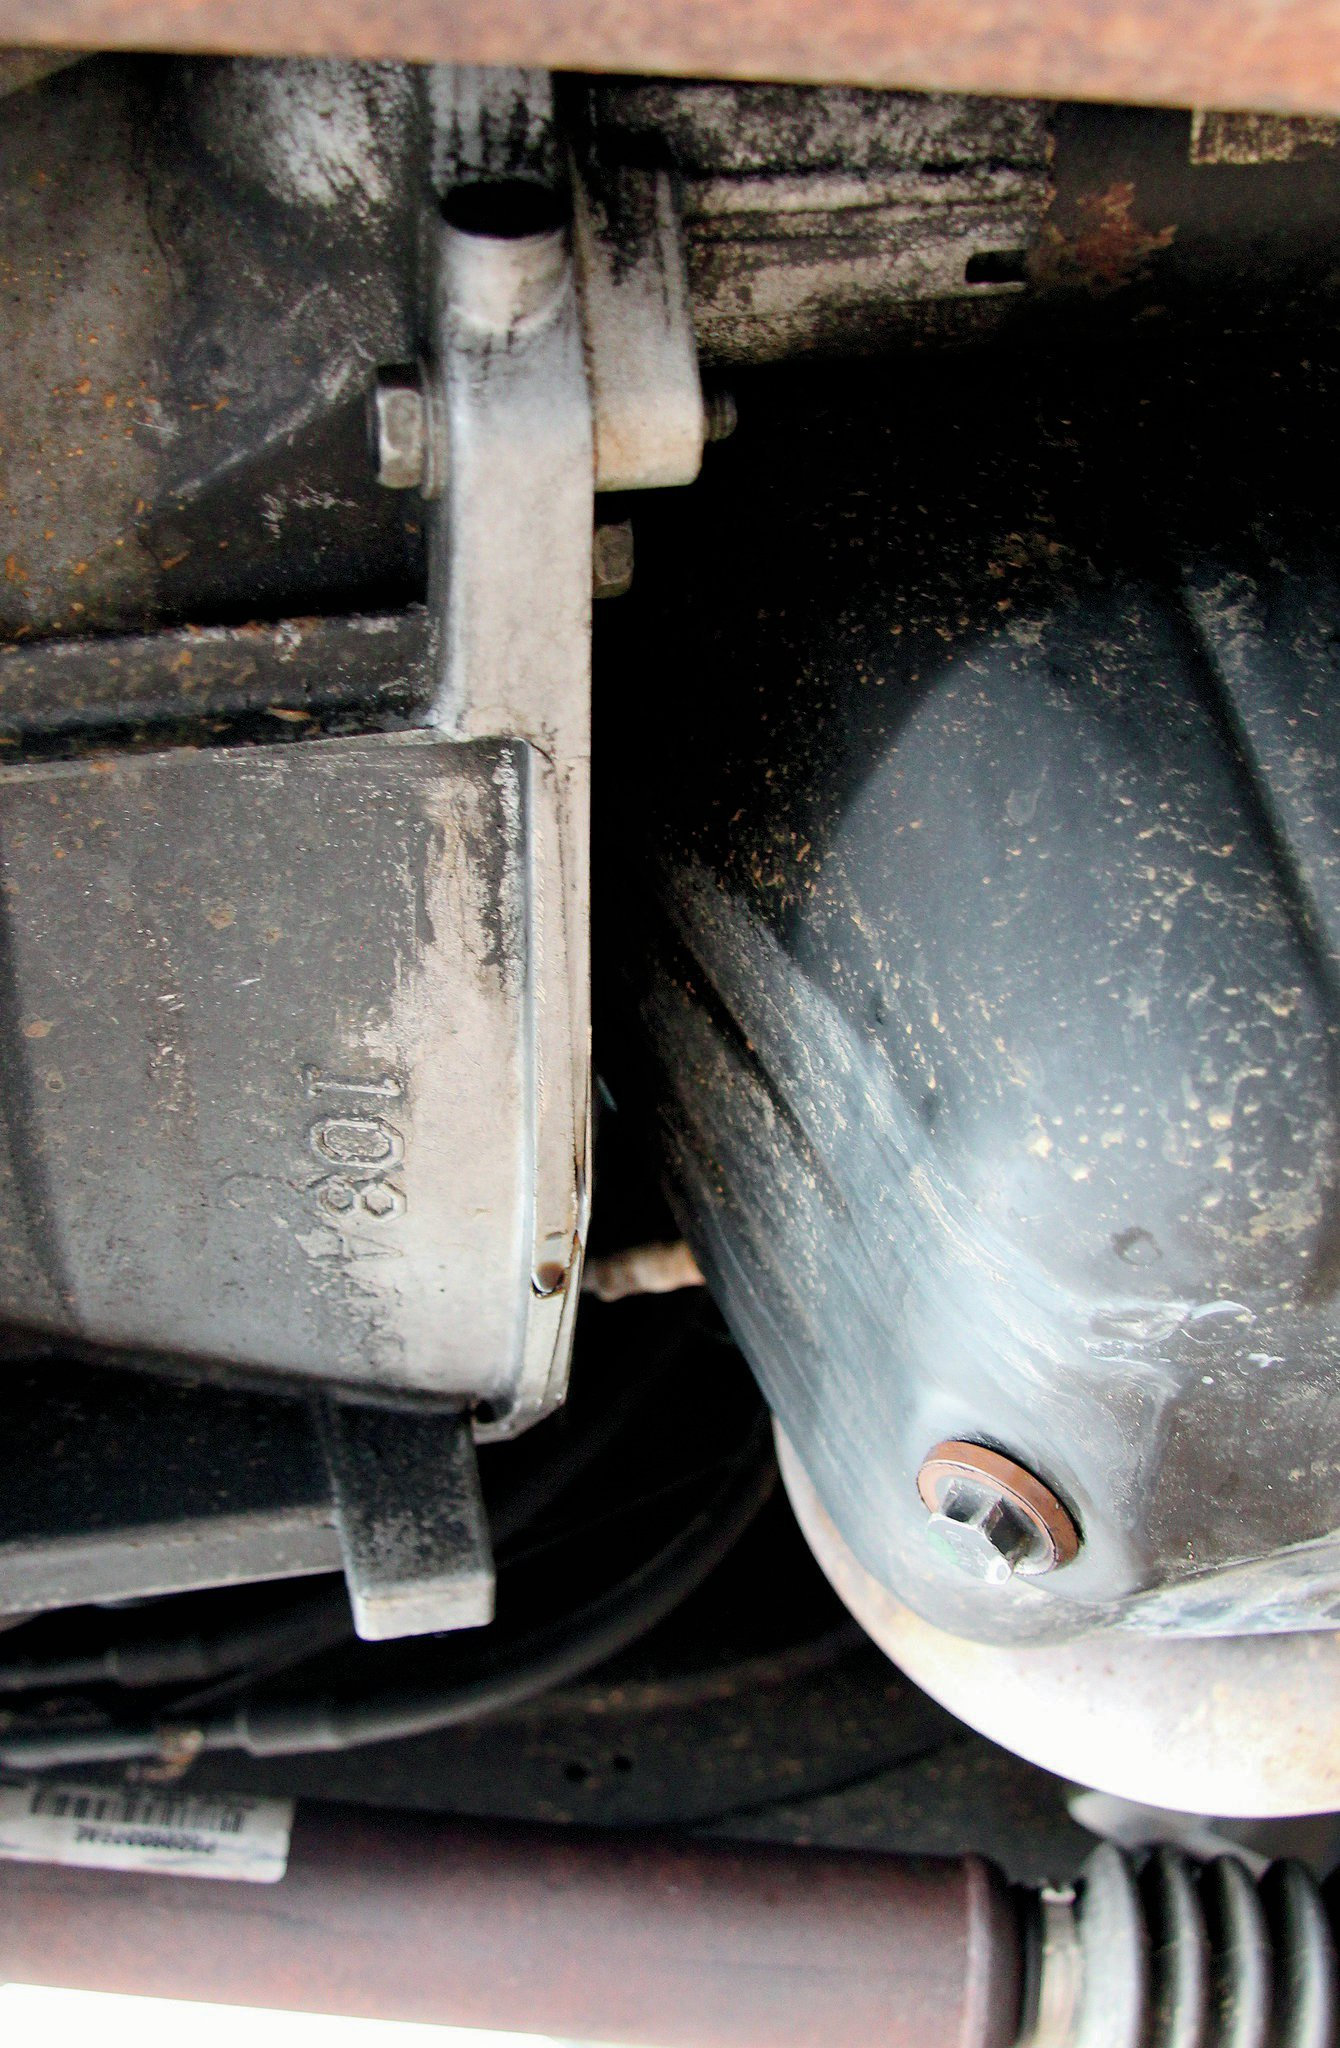 If the Jeep is being sold as a running and driving vehicle, tell the buyer that you are coming in from an hour or so away and see if they will meet you half way. The goal here is to see if there are any leaks that have been wiped up. The specific seal you are looking to see if it is dripping is the rear main. On the 4.0L, the rear-main is two-piece seal. You can actually swap it out without removing the transmission. This is another DIY project for those wrench-savvy enthusiasts. Expect to pay a few hundred bucks if you have to farm the job out.